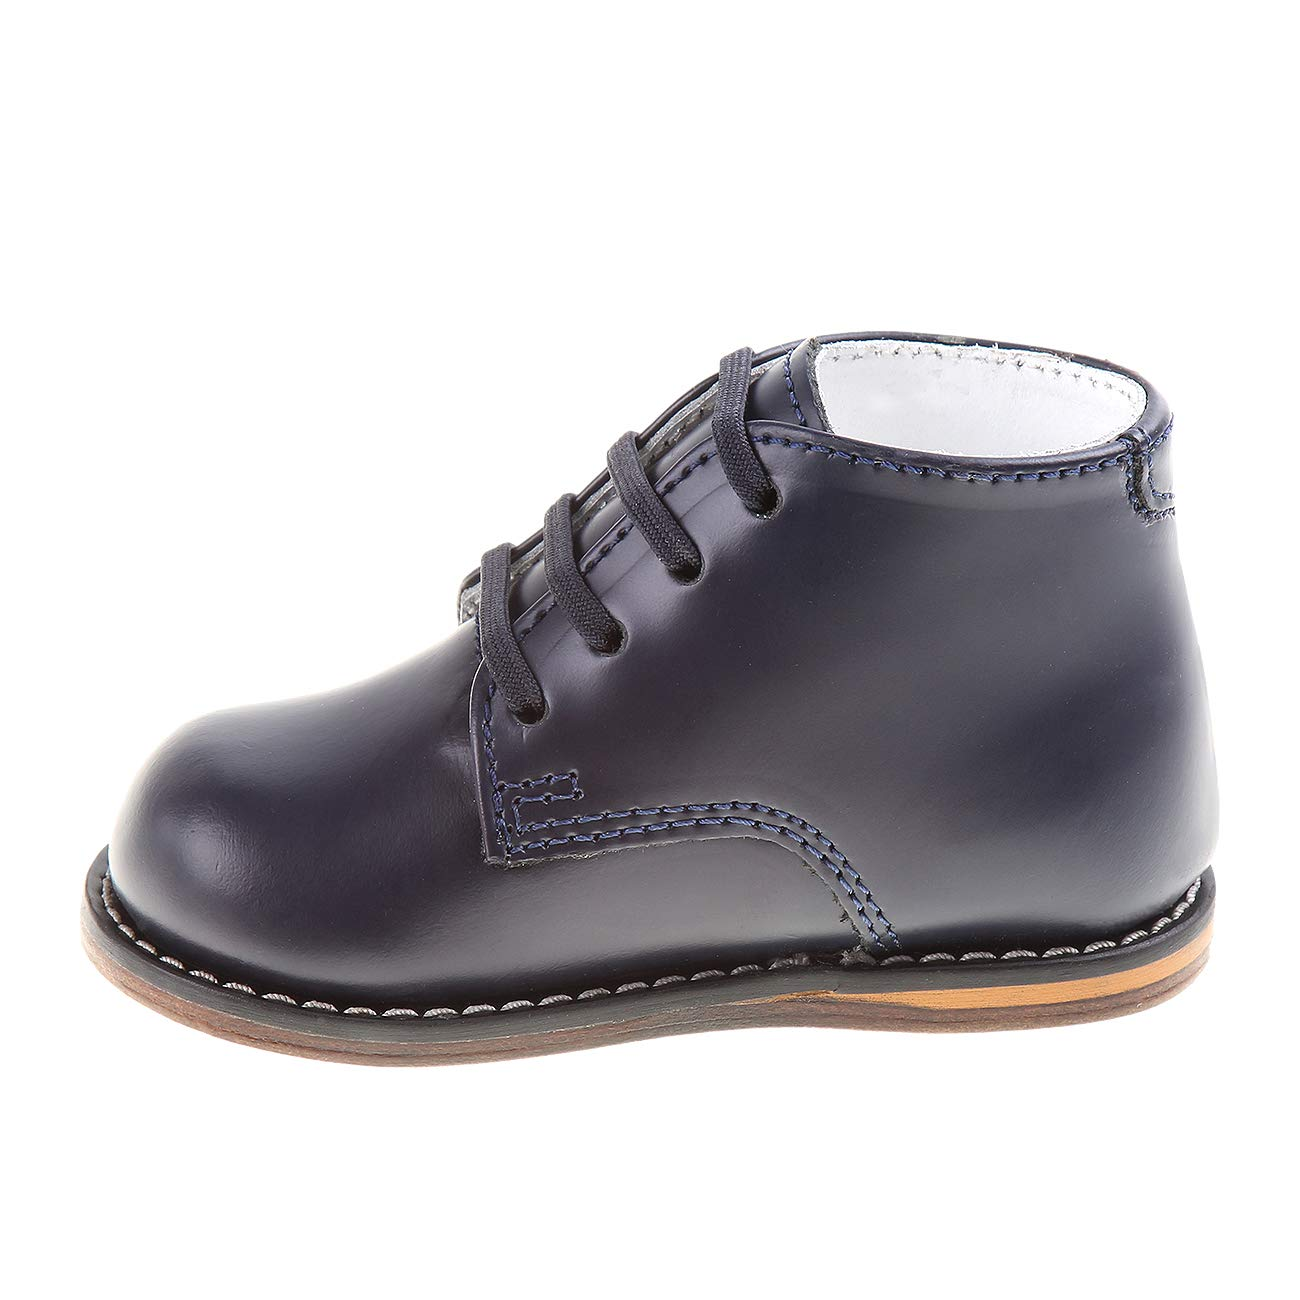 Josmo 2-8 Wide Walking Shoes (Navy, 5.5 Wide) by Josmo (Image #2)